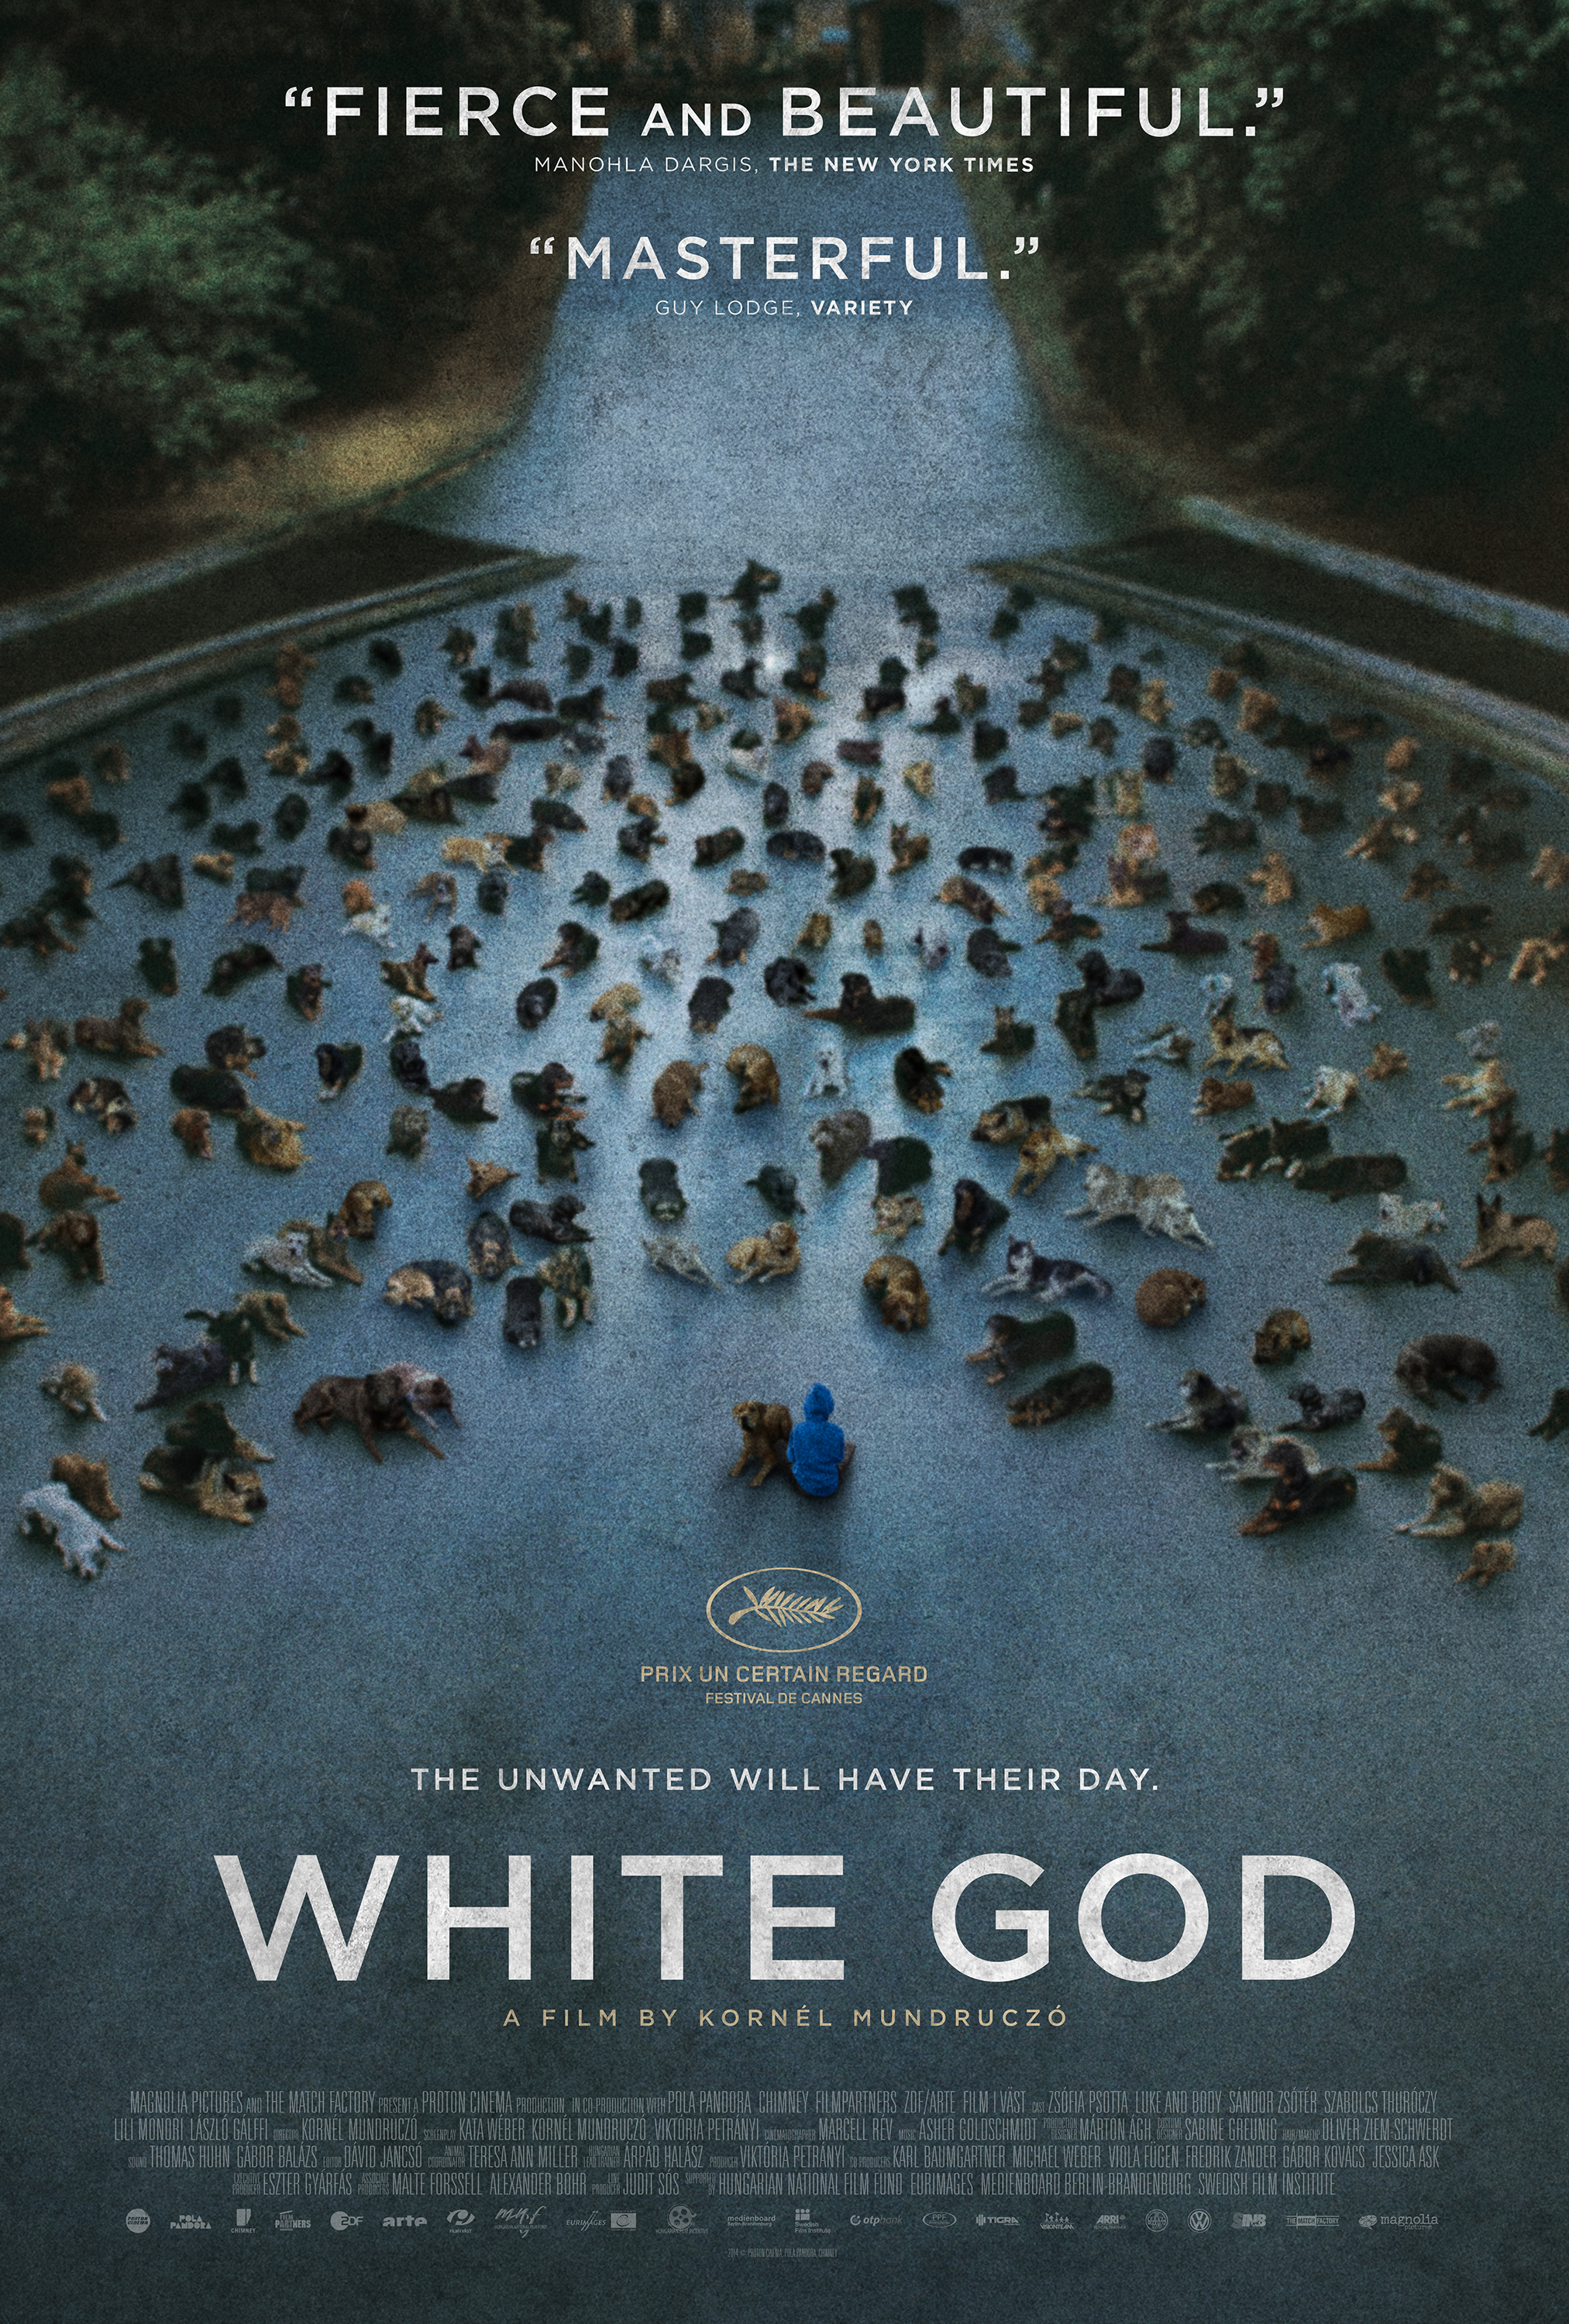 White God Takes The Easy Route To Schlock Over Allegory A